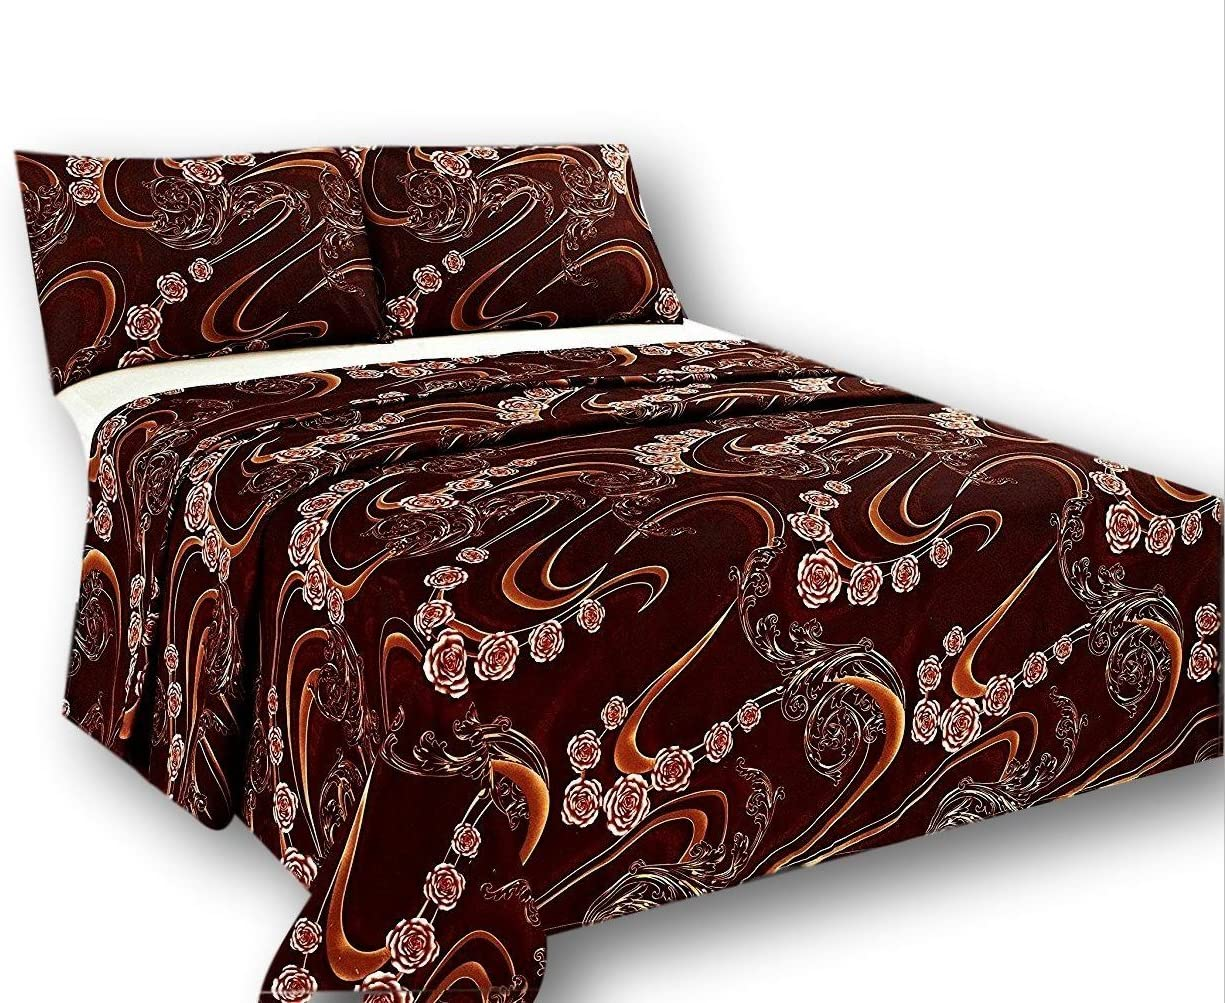 Long Beach Mall Purchase Tache Gold Paisley Brown Floral Flat Sheet - Br Melted Only